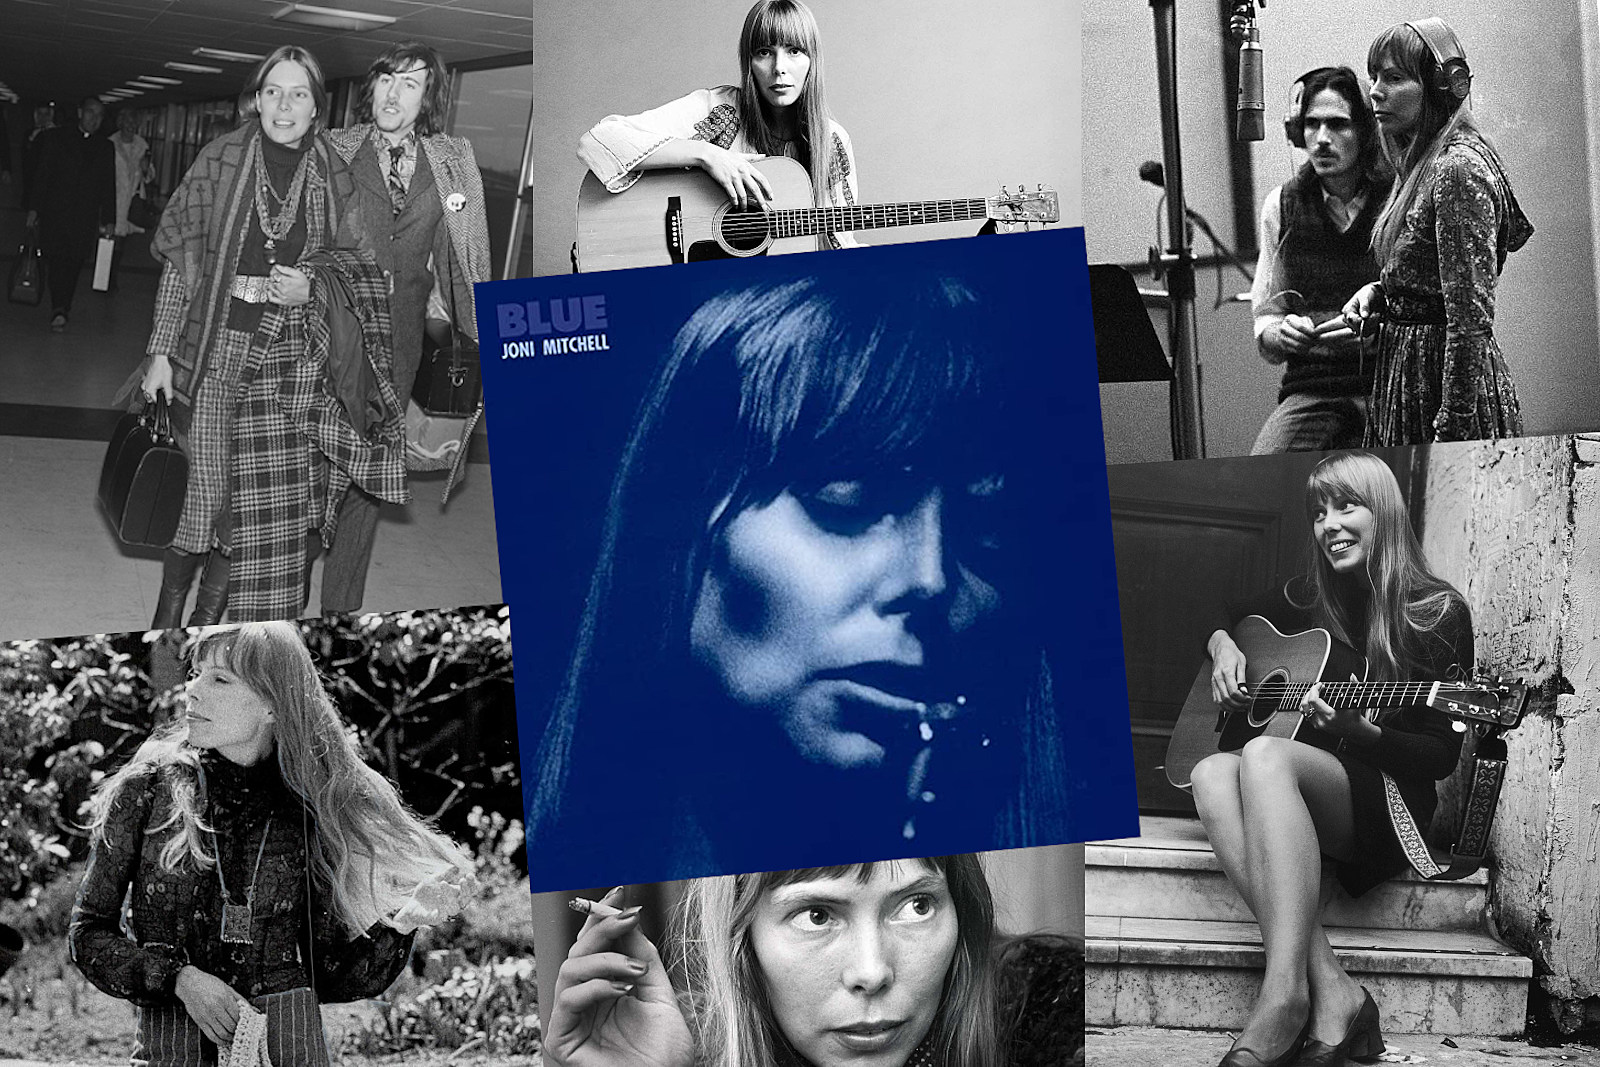 Joni Mitchell's Landscape-Shifting 'Blue' at 50: Roundtable